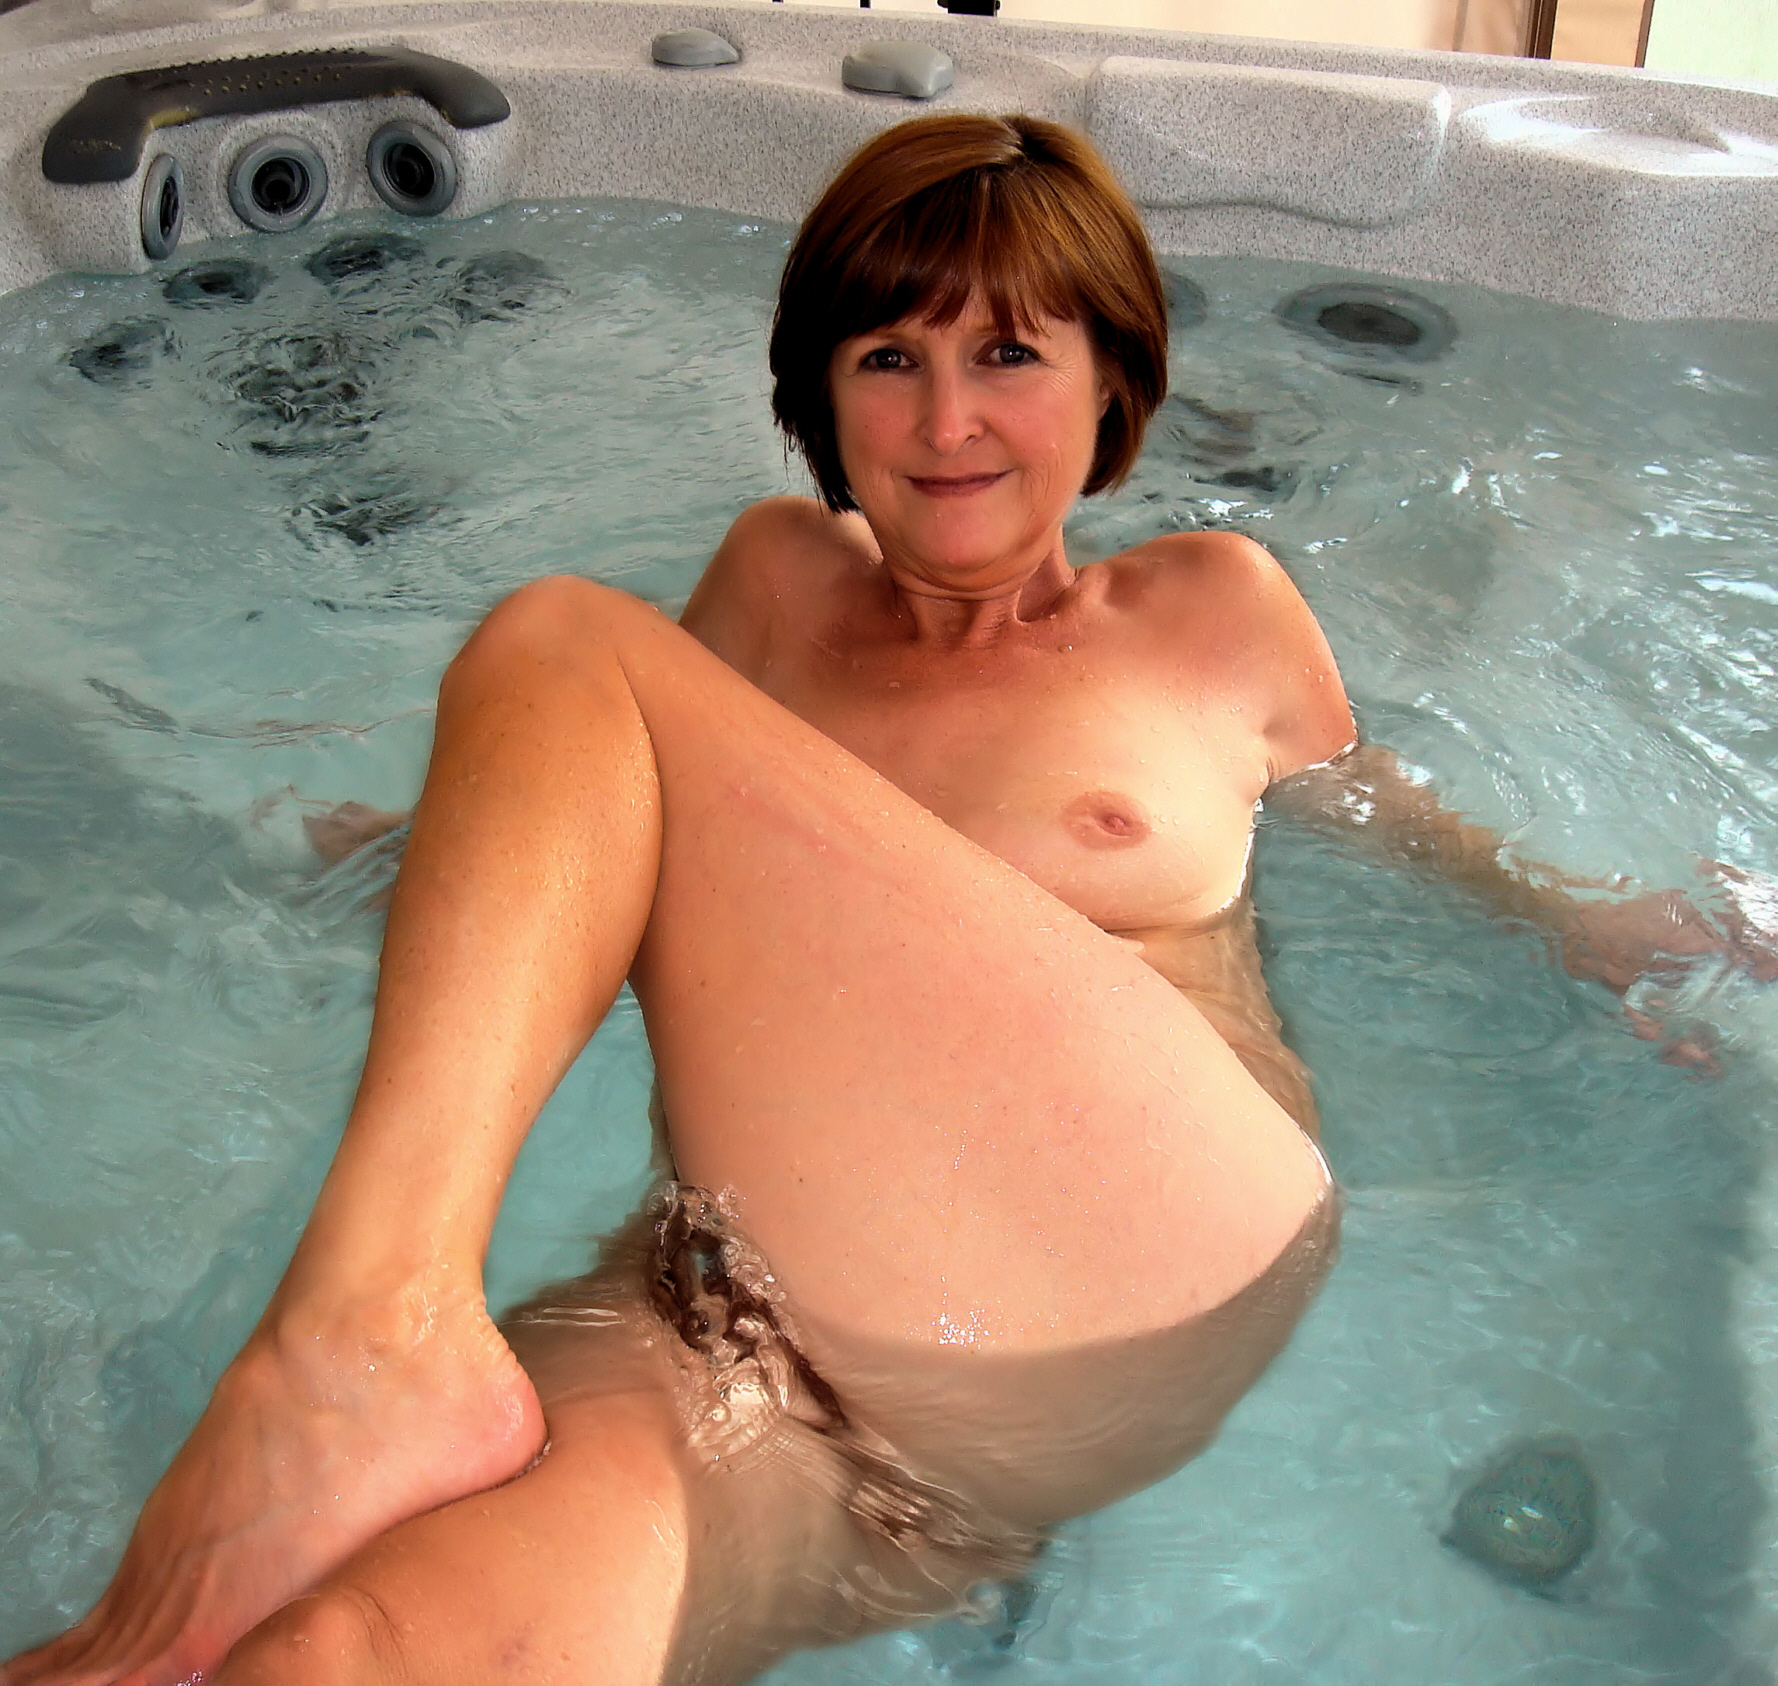 Wife in hot tub